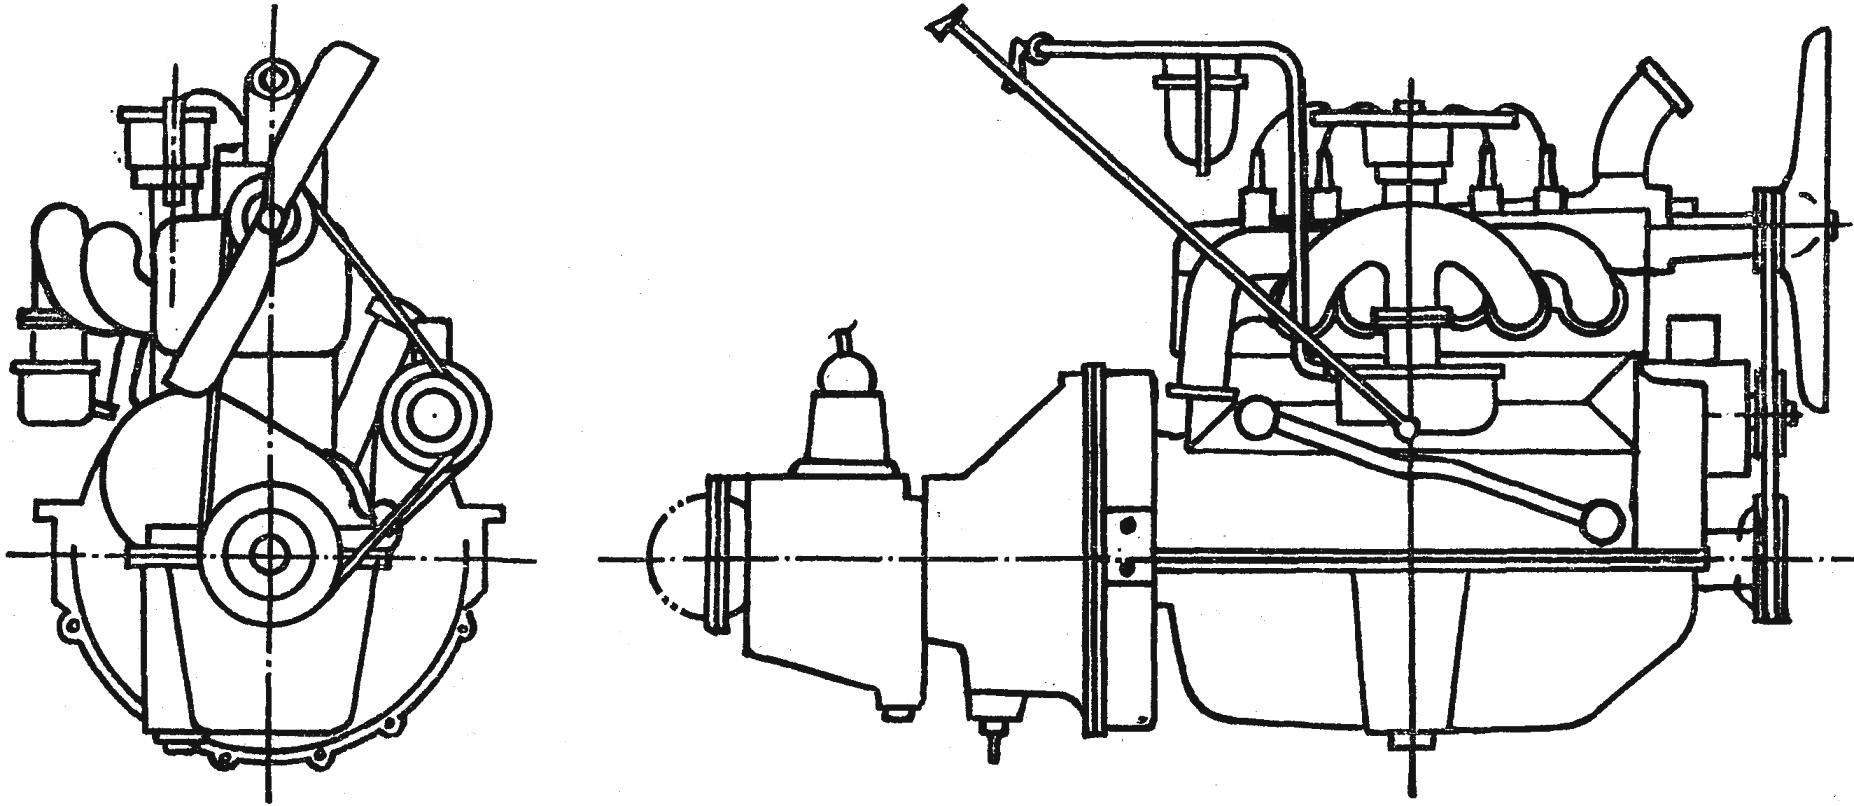 Fig. 3. The engine of the GAZ-A.